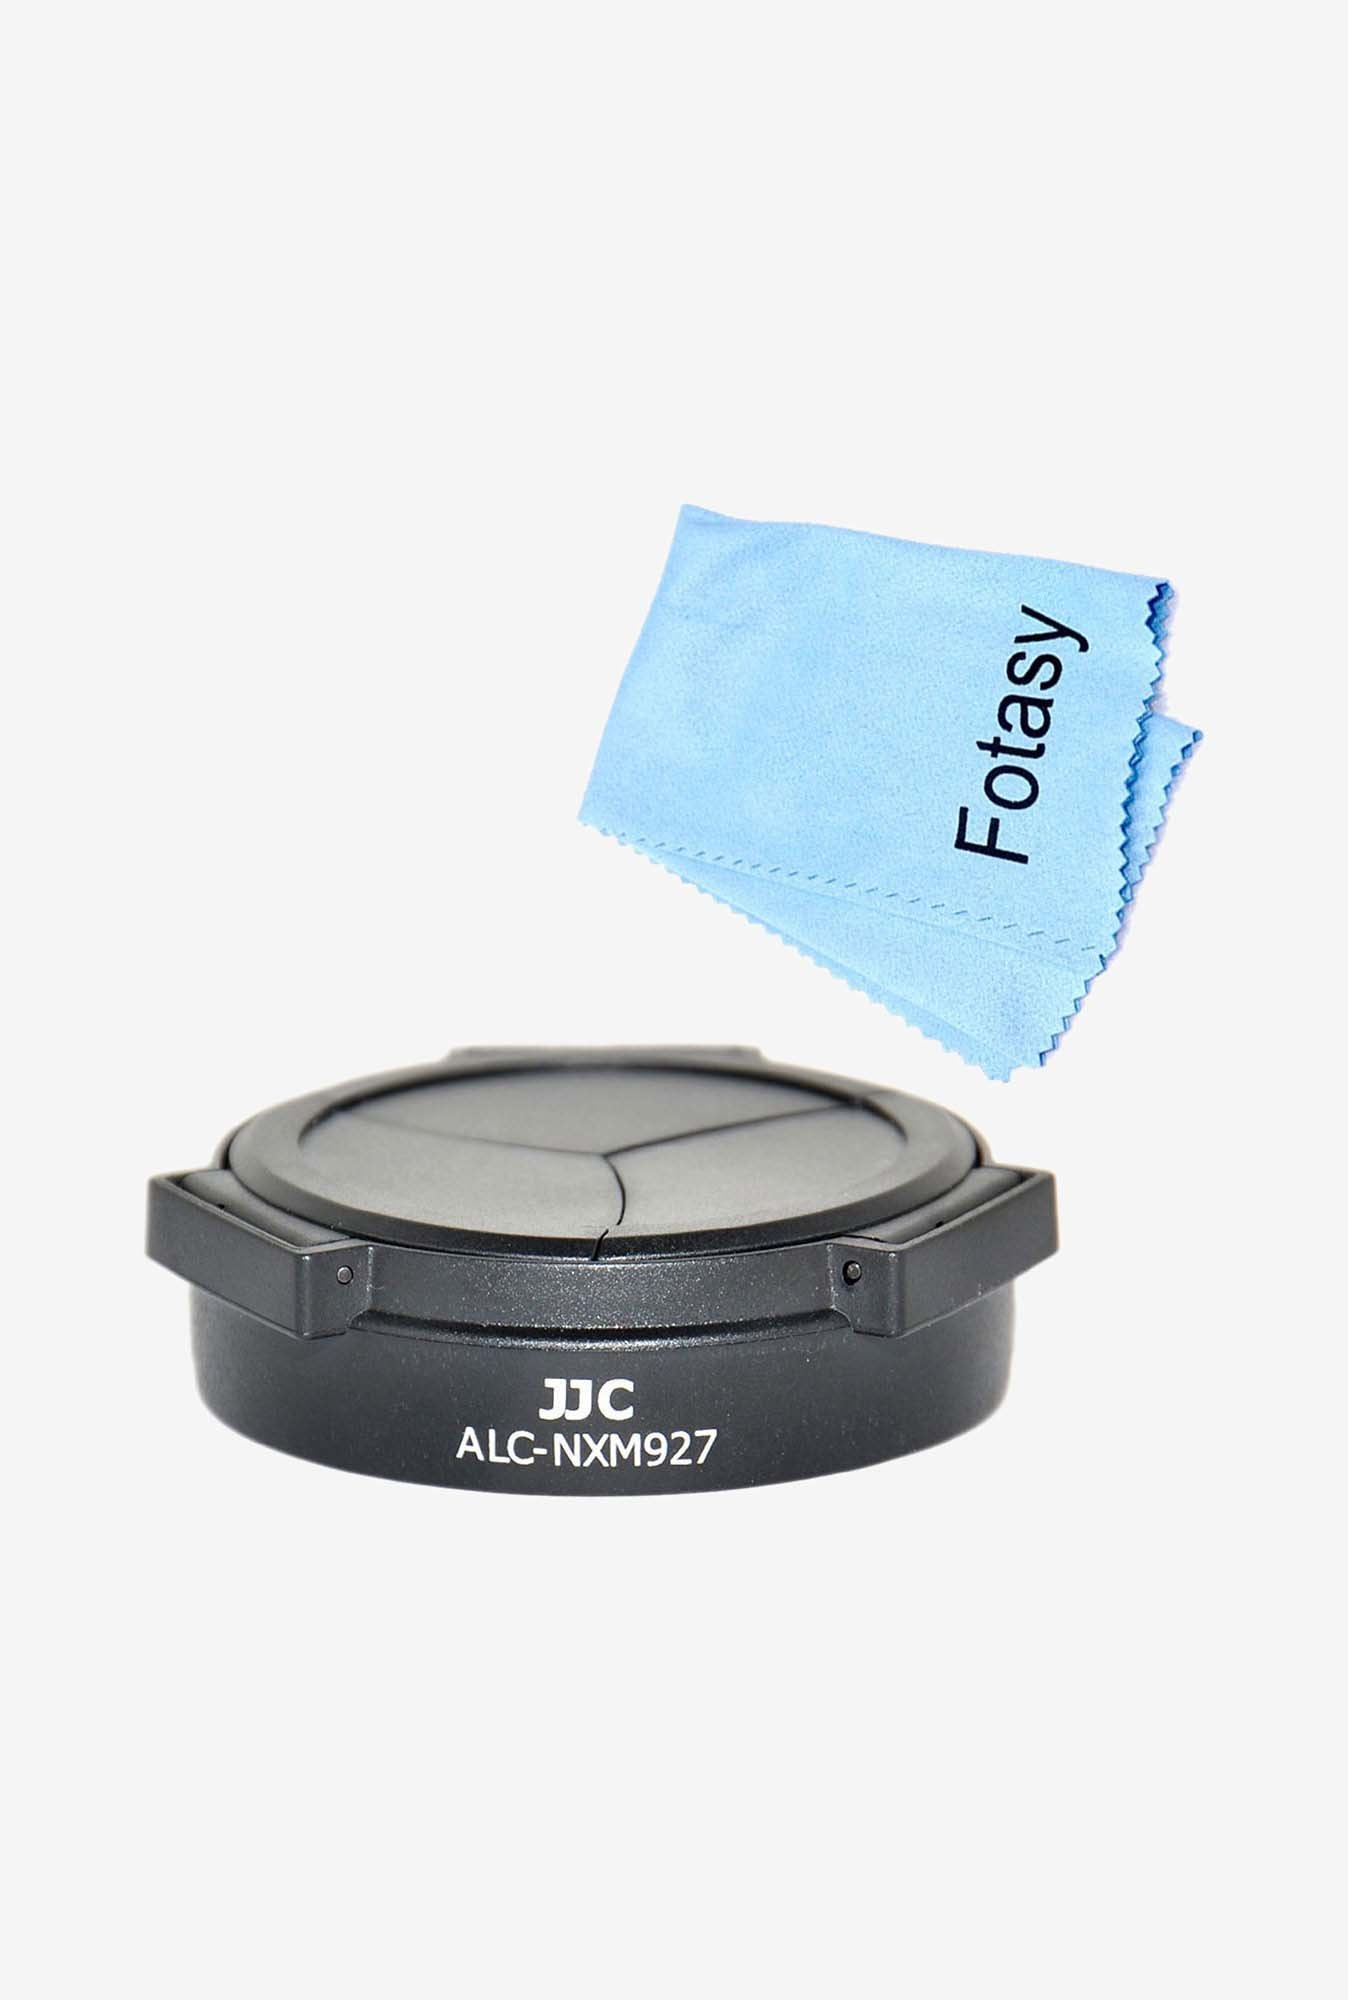 Fotasy AHNXM Auto Lens Cap Hood & Cleaning Cloth Kit (Black)